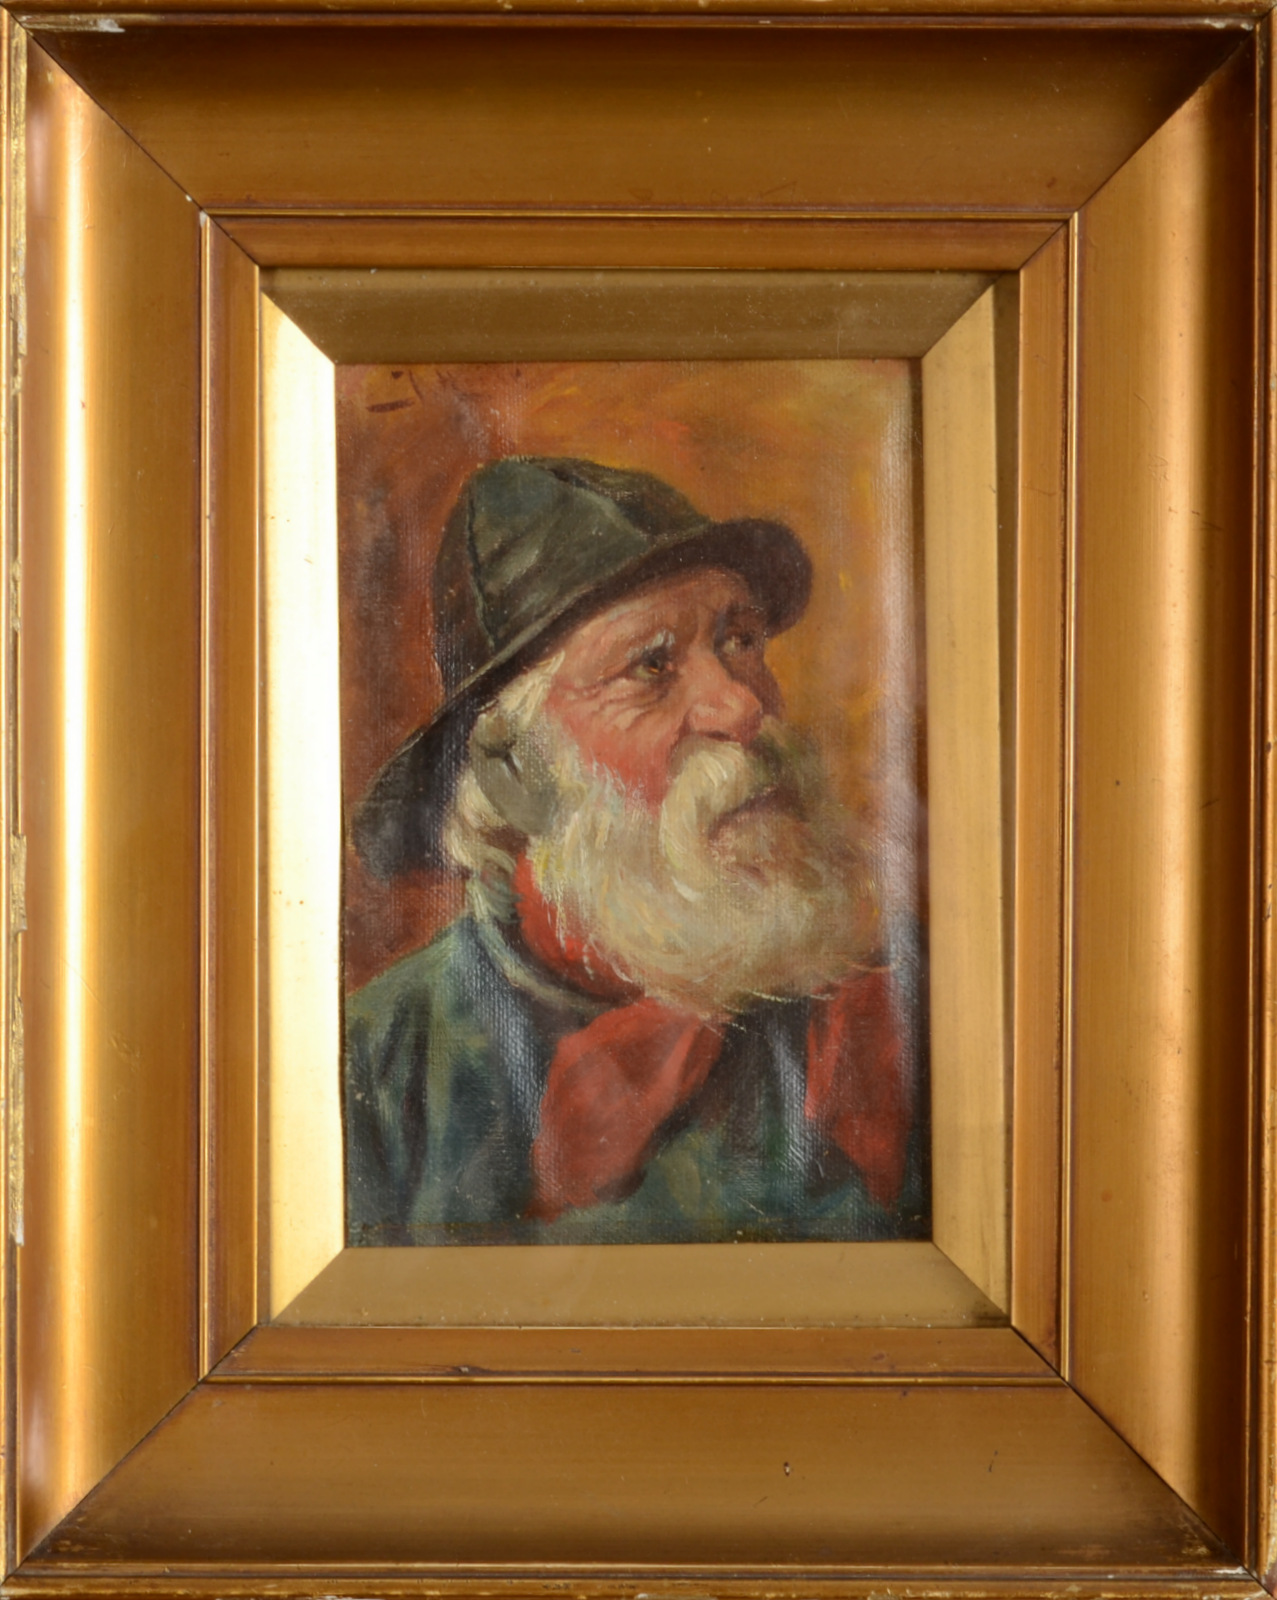 Lot 9 - Portrait of a Fisherman Oil on canvas Indistinctly signed 16 x 11 cm